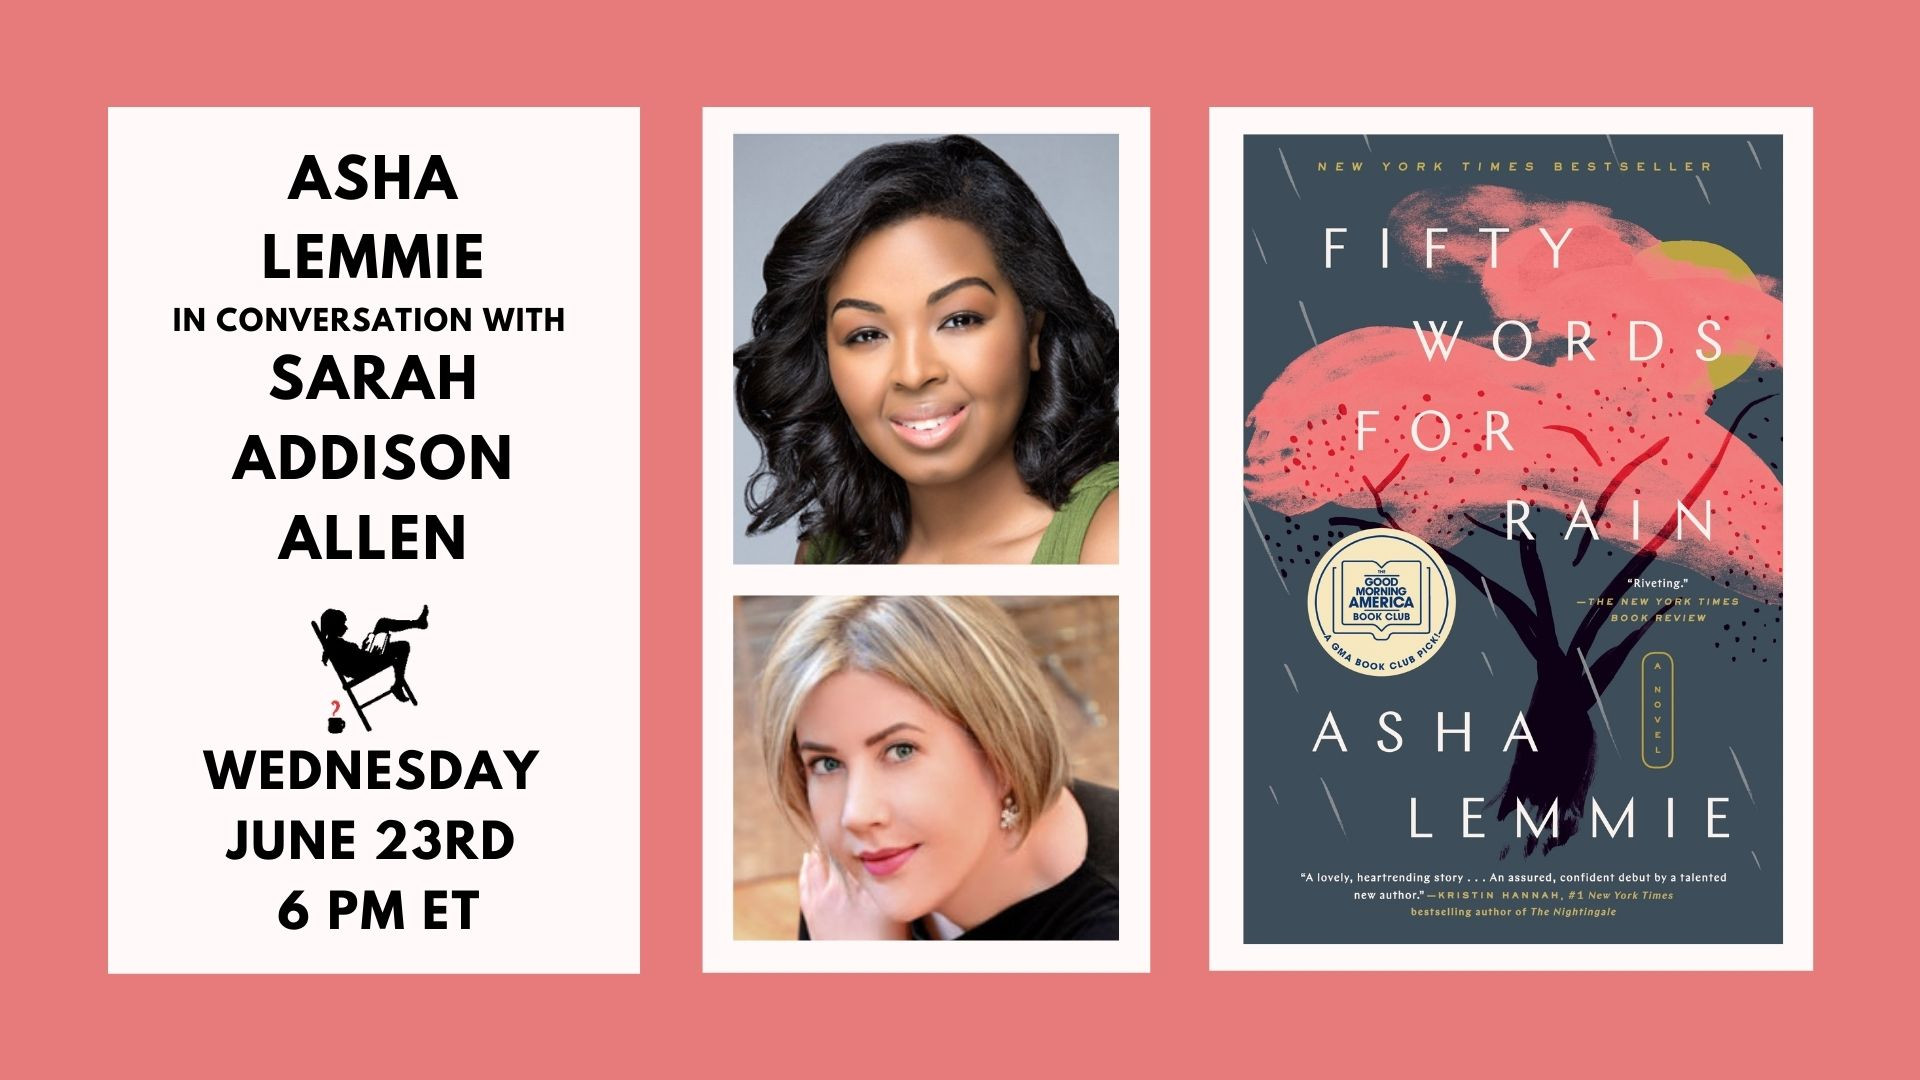 Image shows a pink border with white box containing the Fifty Words for Rain cover, headshot for Asha Lemmie and Sarah Addison Allen, and the event date of 6/23/21 at 6pm.